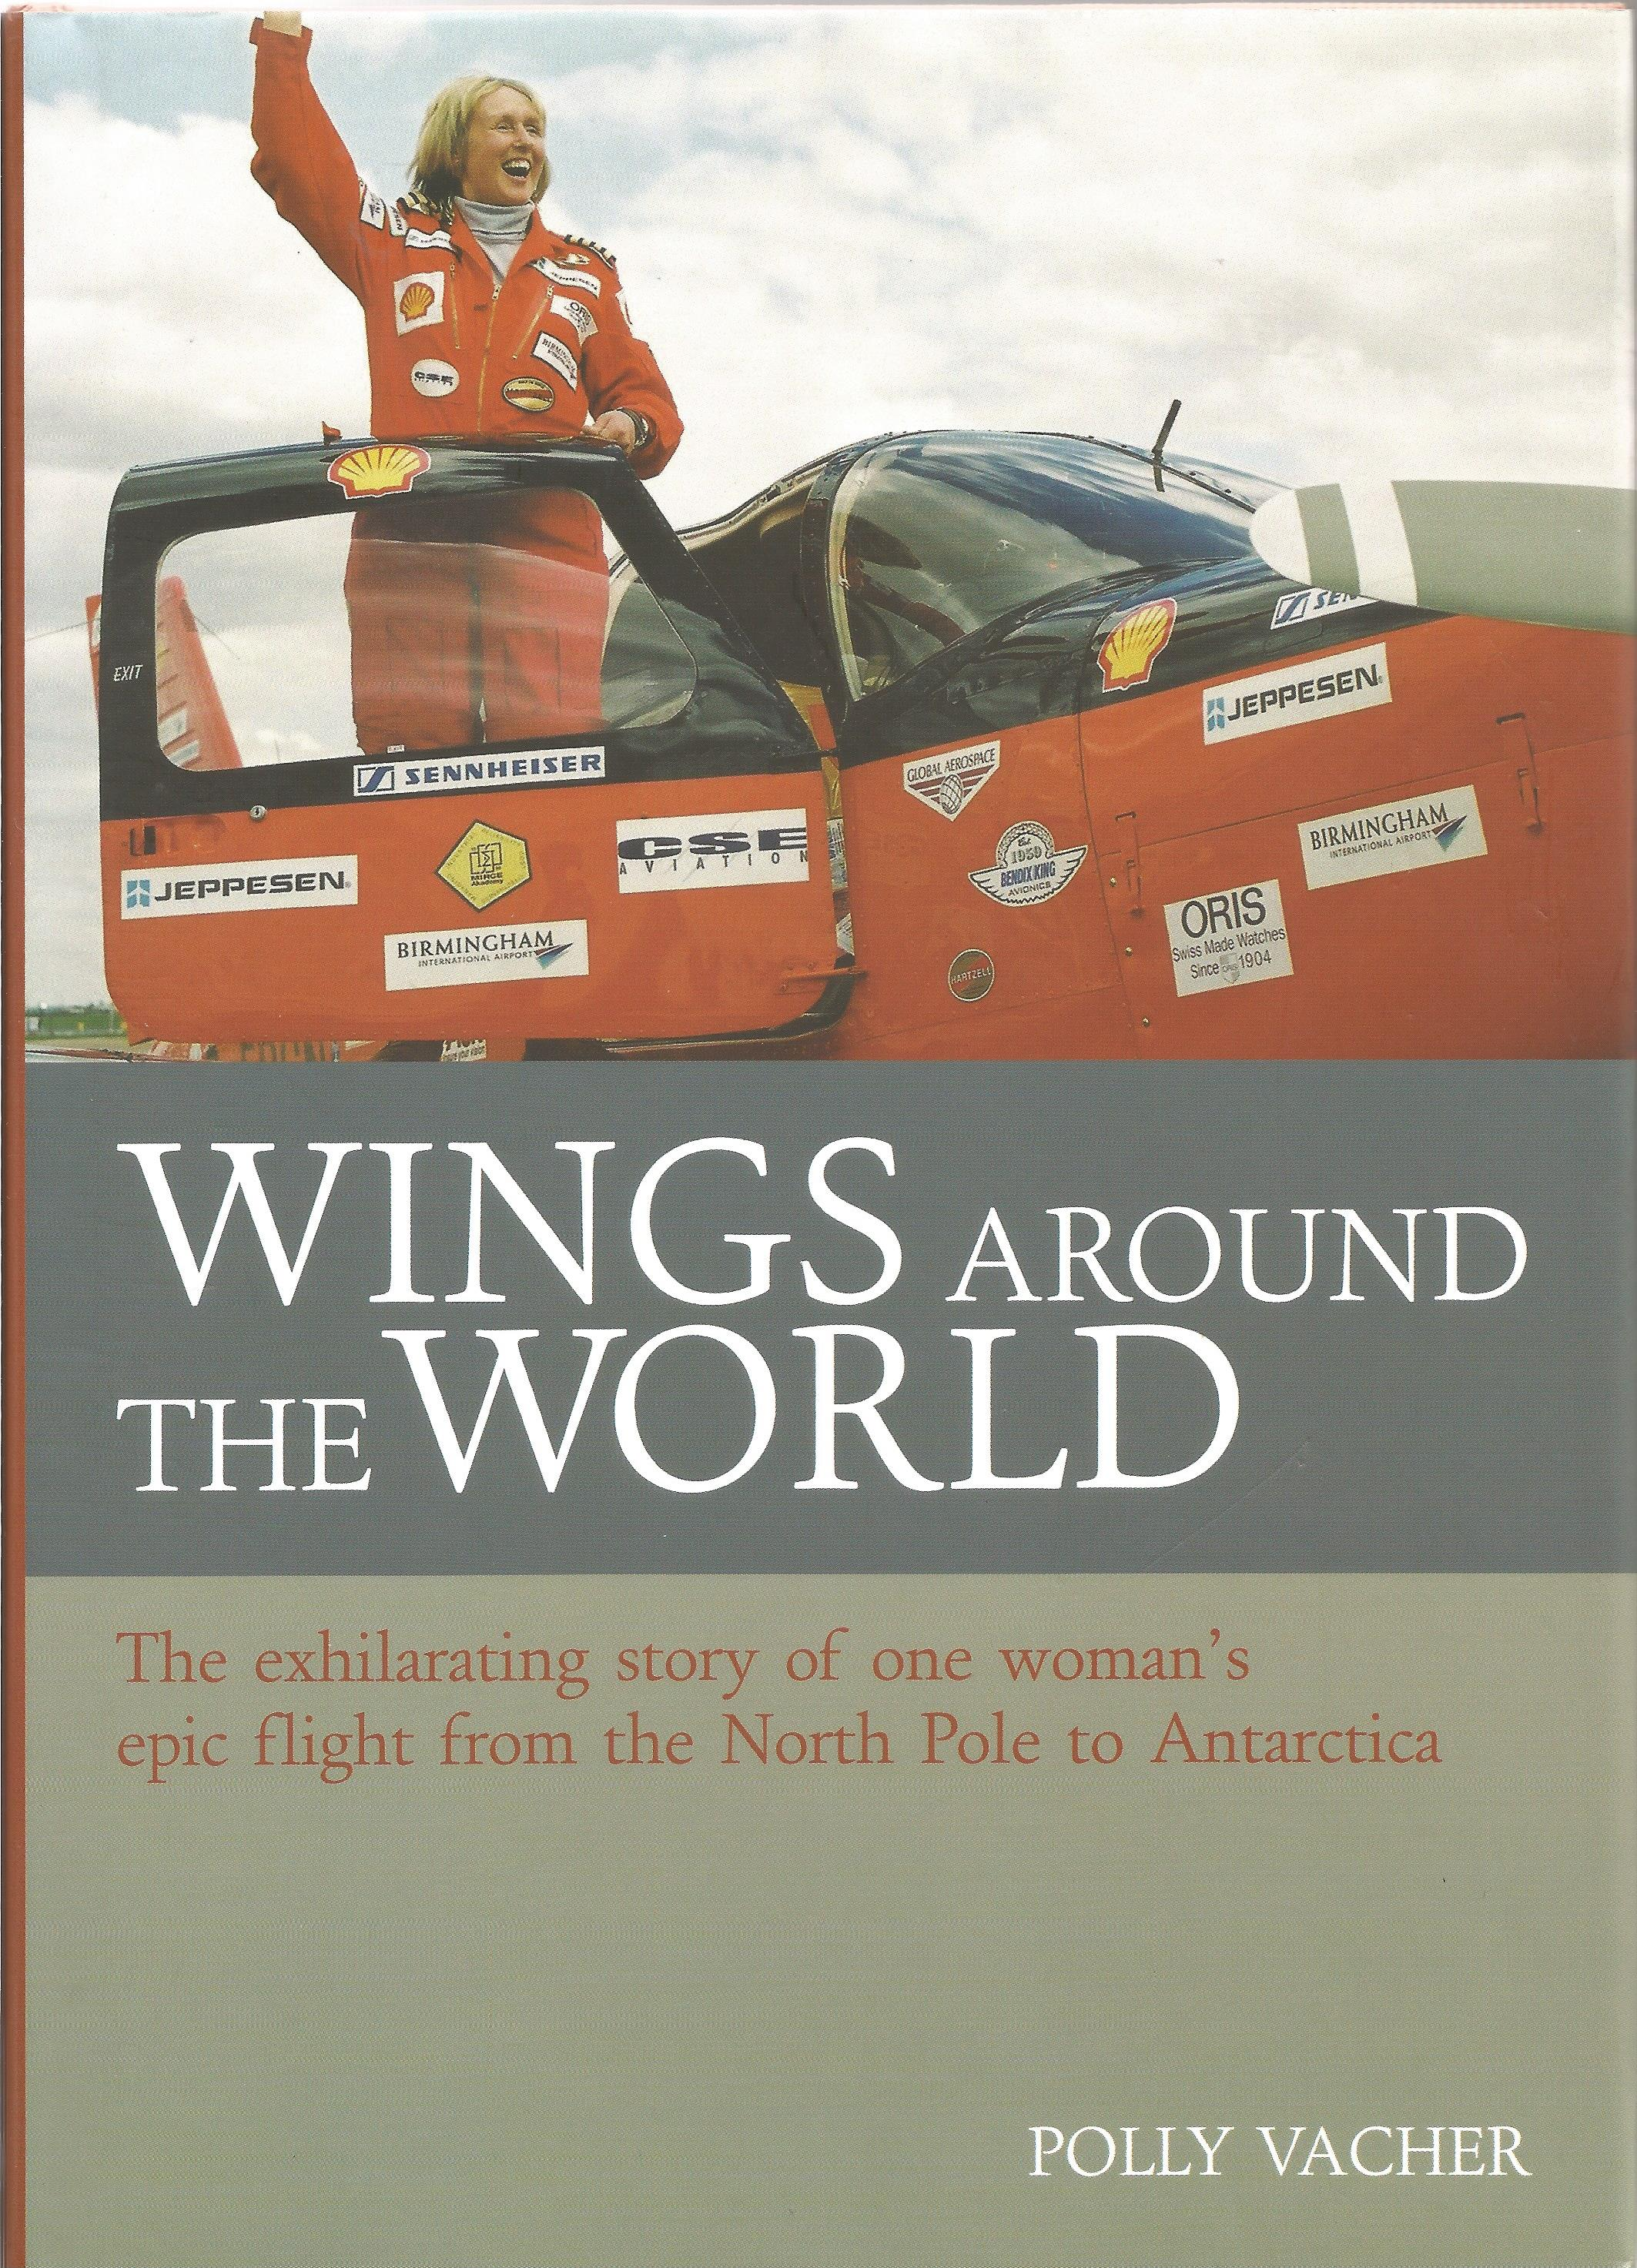 Polly Vacher. Wings Around The World. The Exhilarating story of one woman's epic flight from the - Image 3 of 3